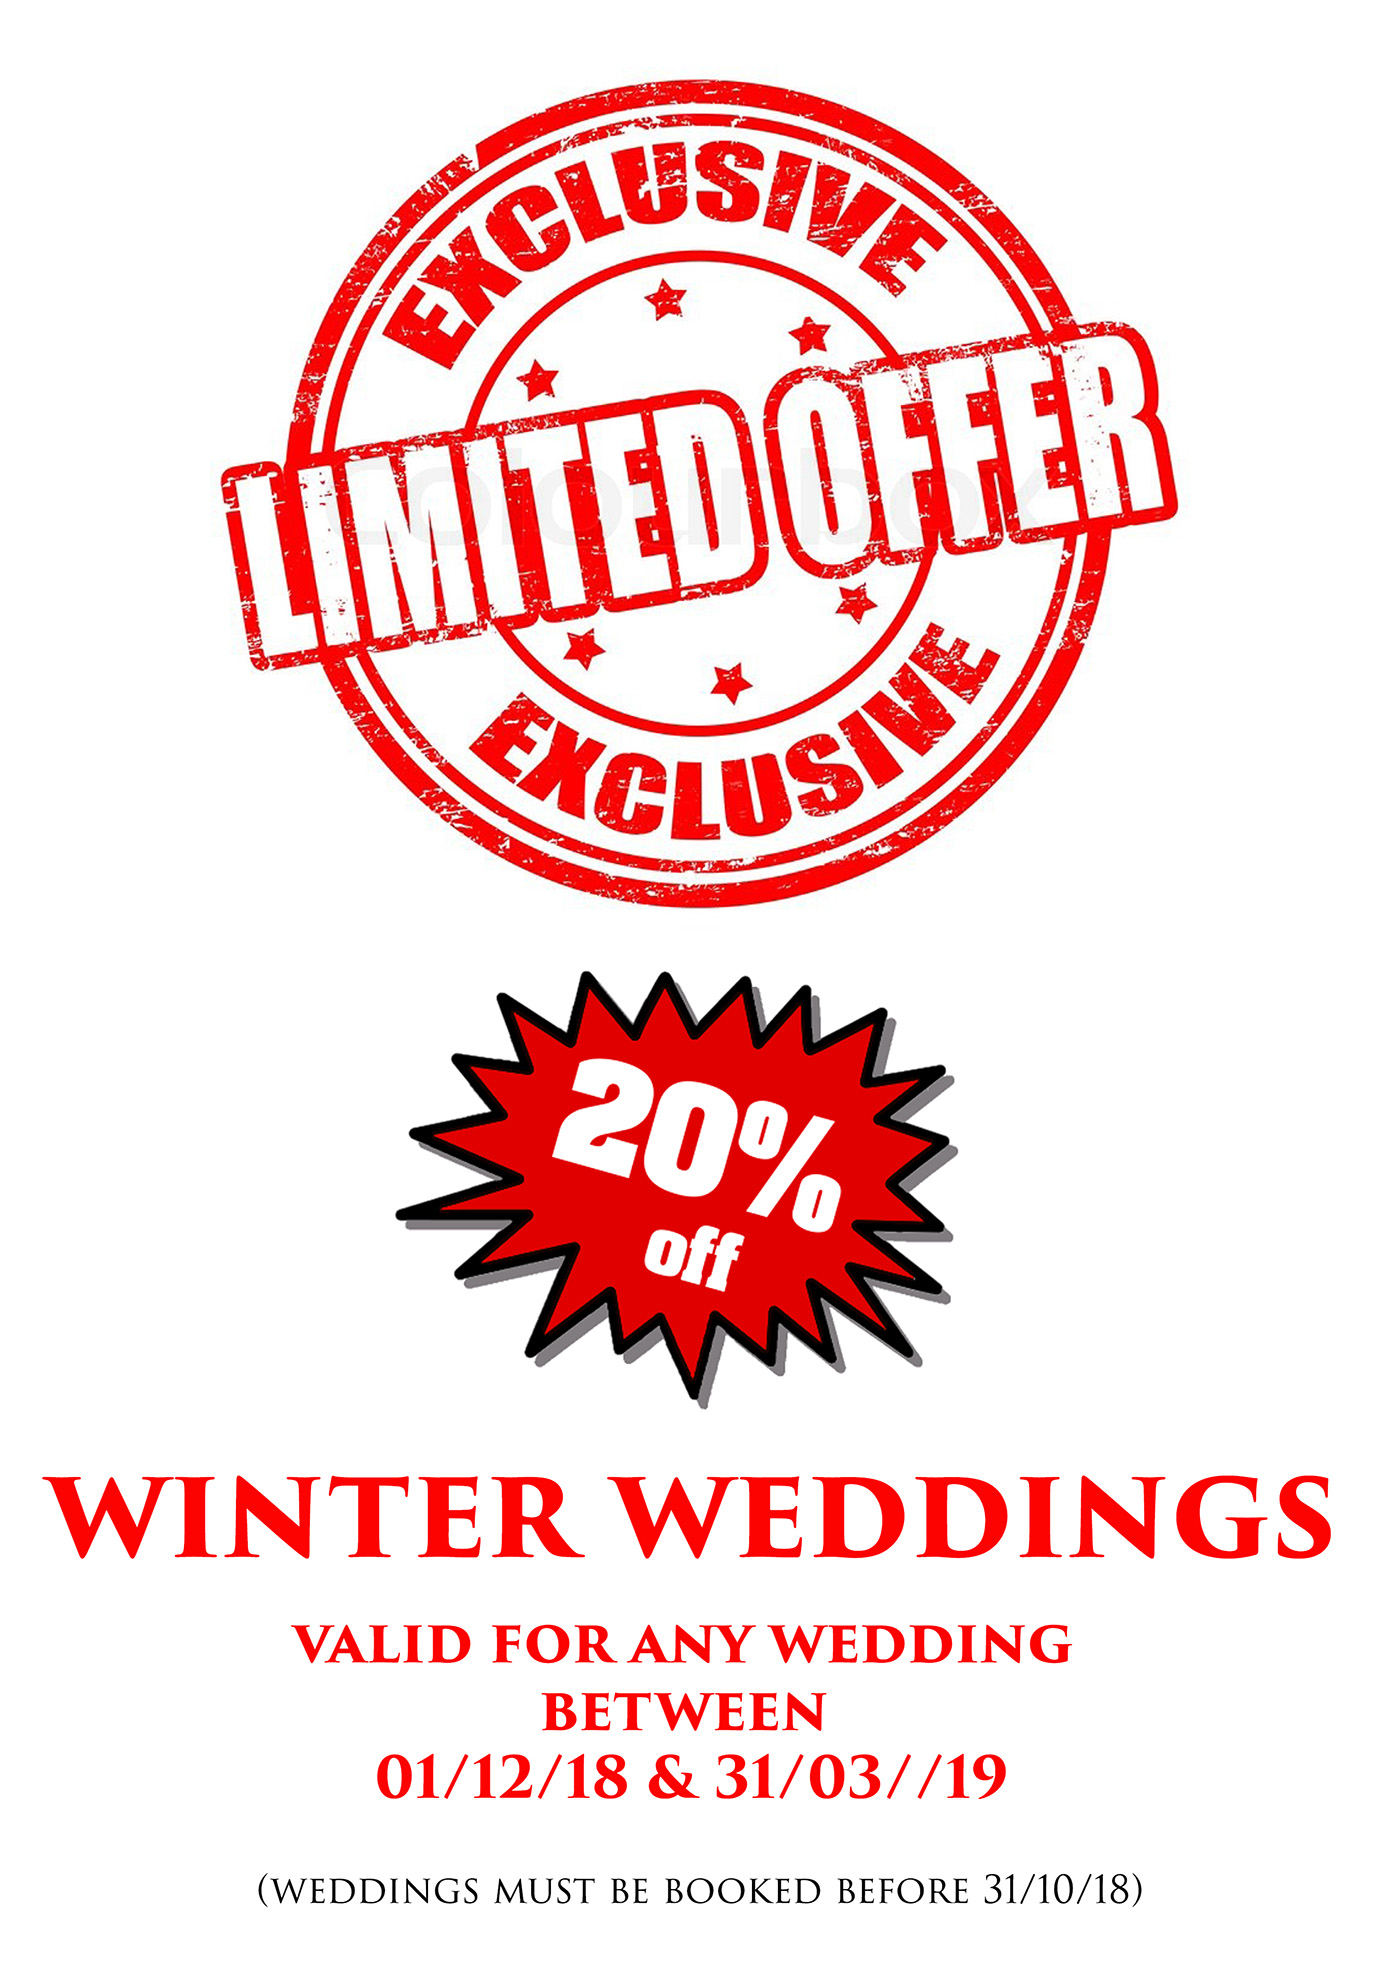 **EXCLUSIVE LIMITED WINTER WEDDING SPECIAL OFFER   for weddings between 1st December 2018 and the 31st March 2019 if booked before the 31st October 2018.